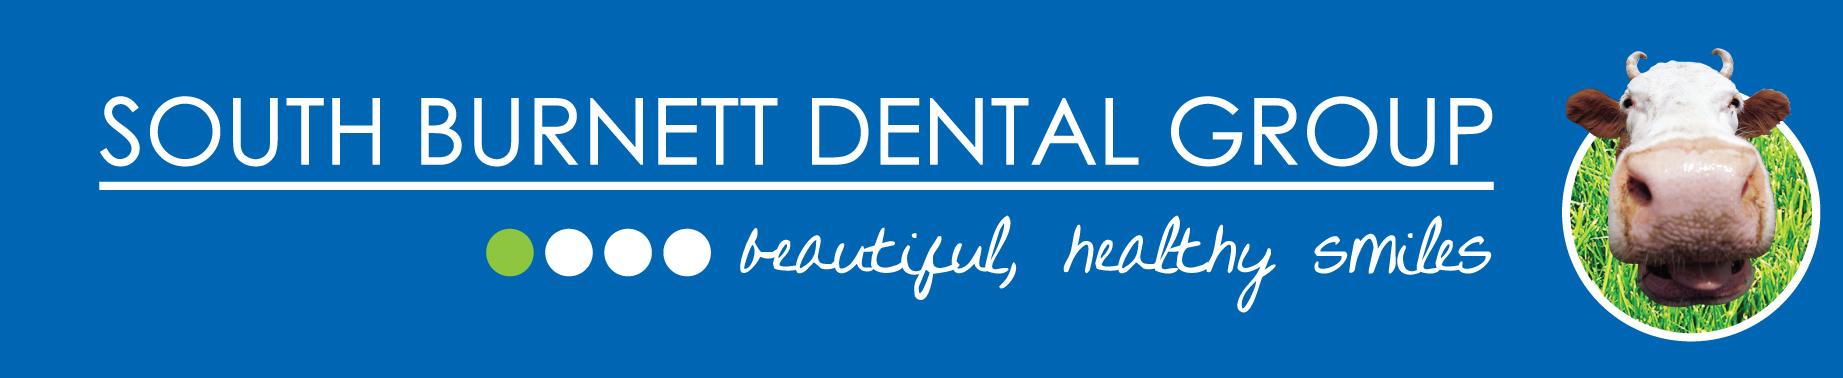 South Burnett Dental Group